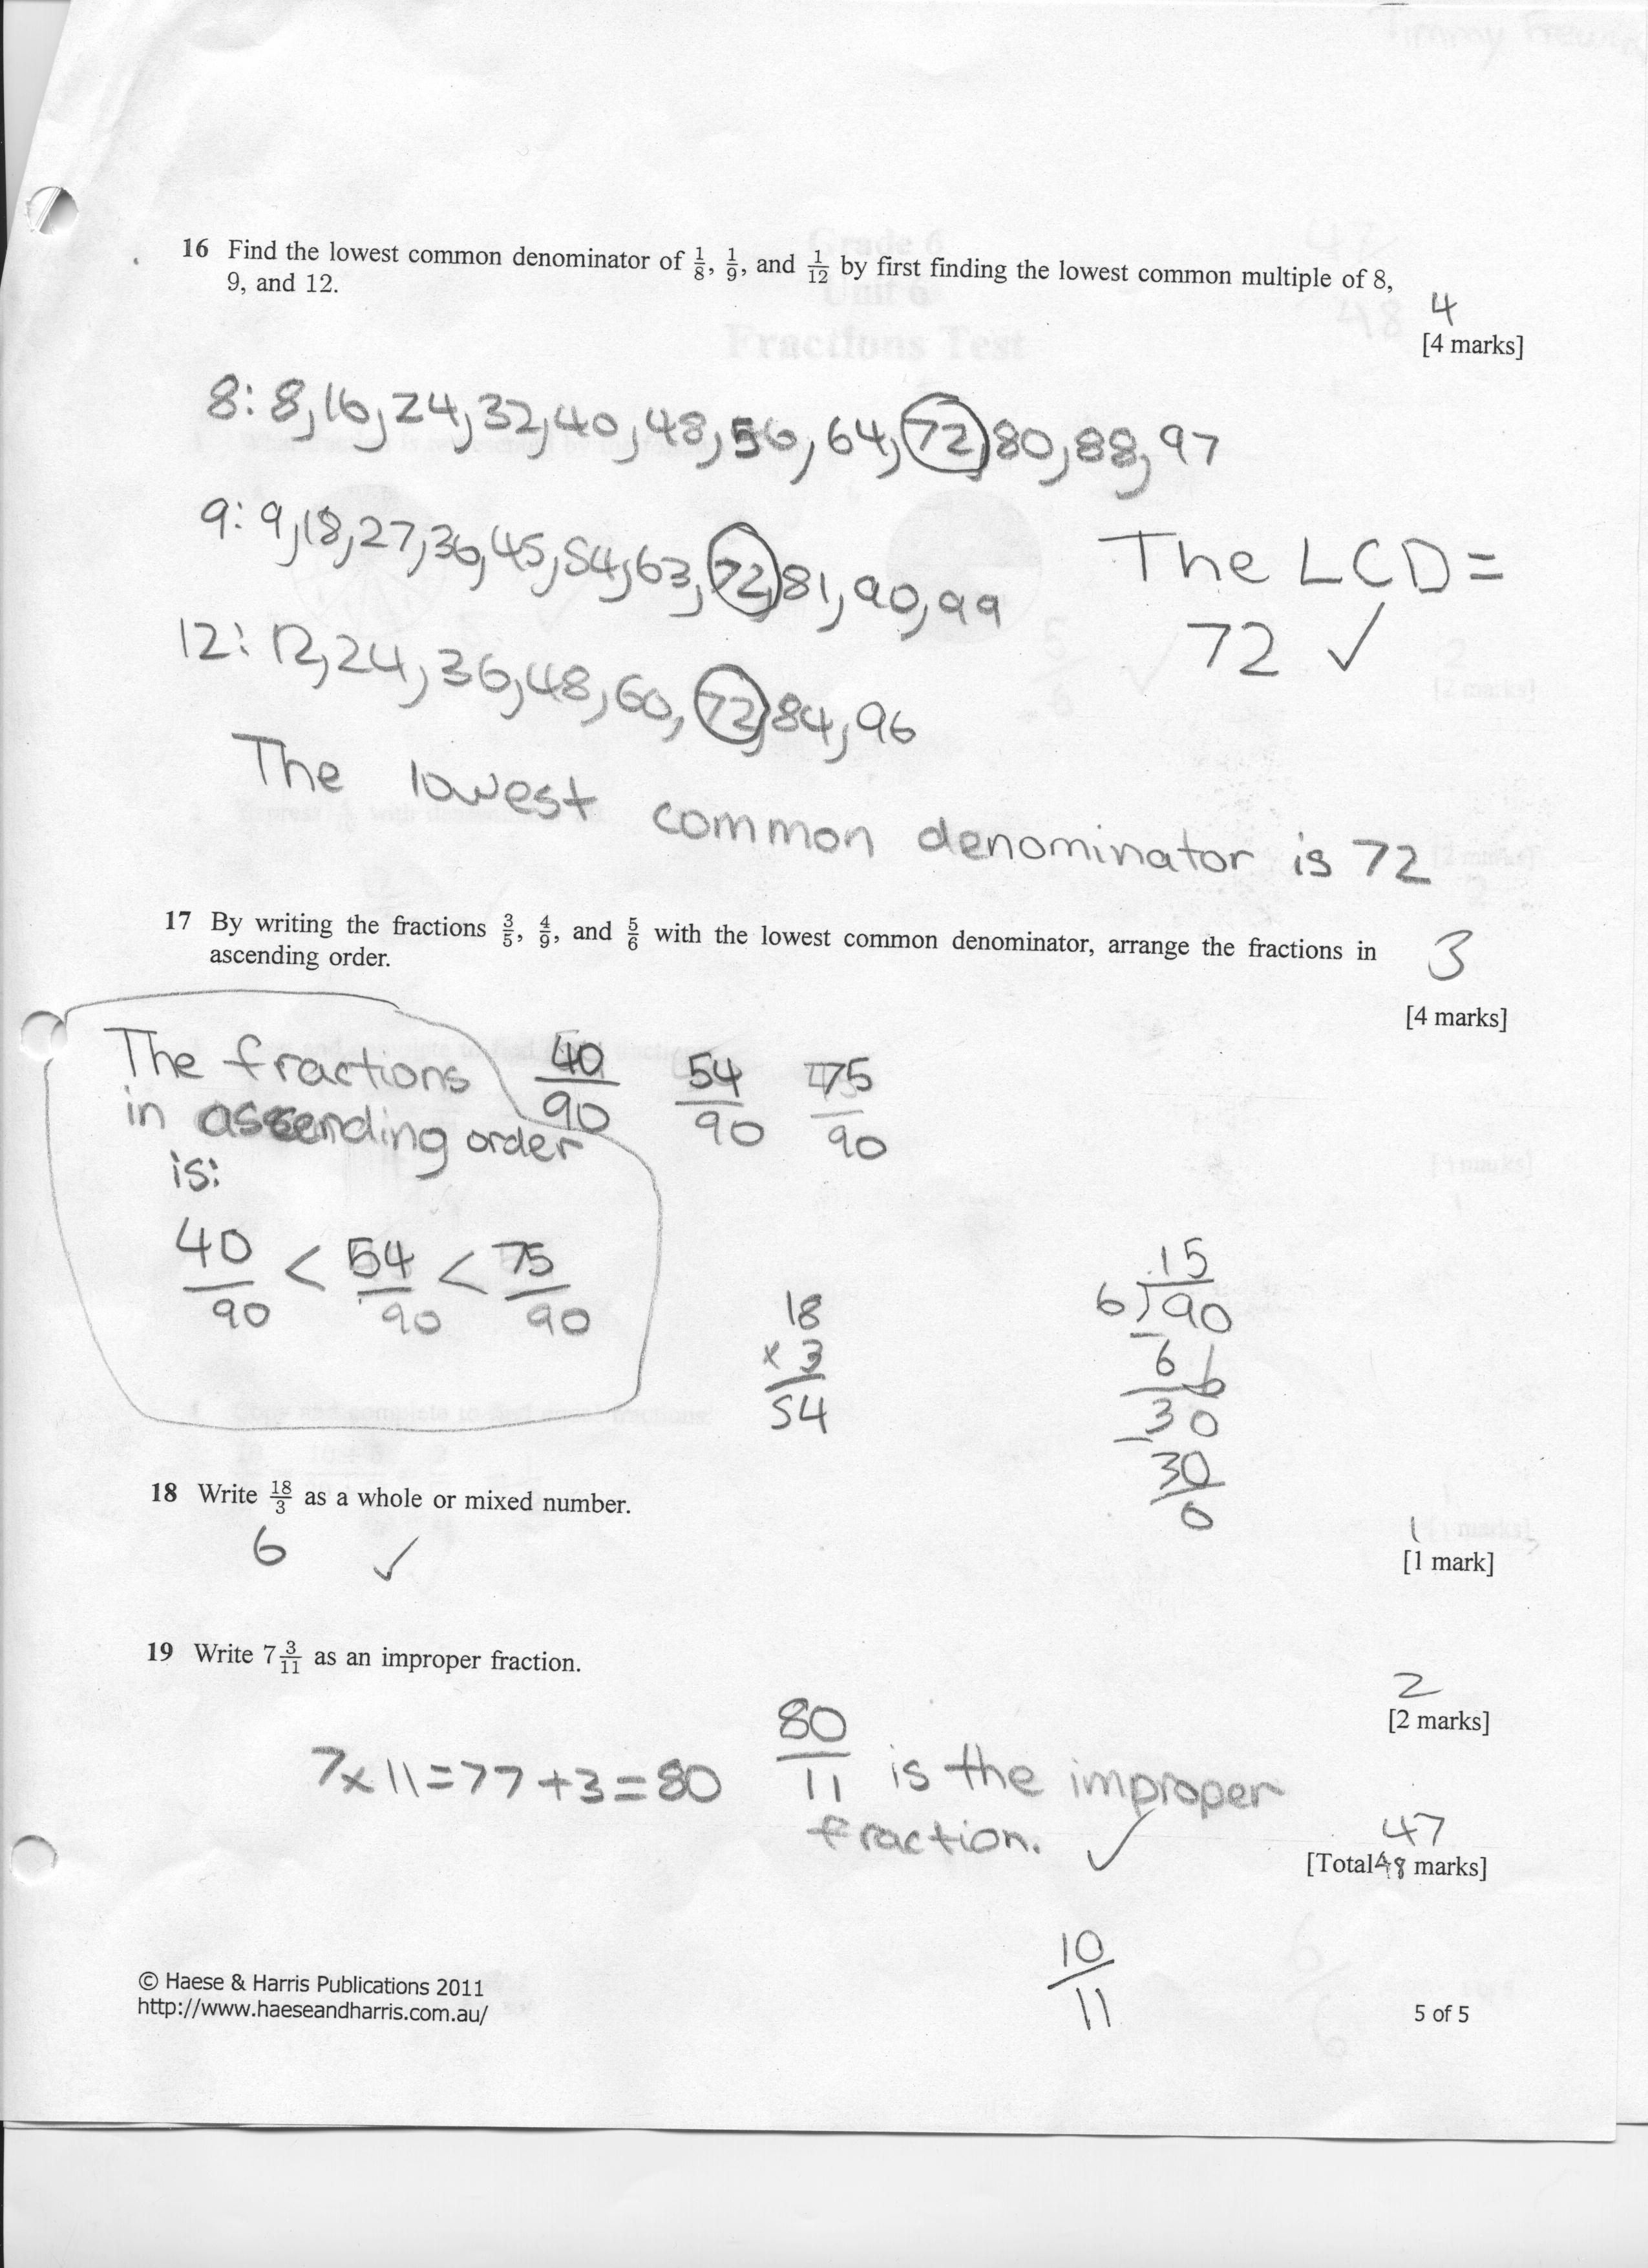 grade 7 fraction test 7 a pizza was cut into twelve slices seven were eaten what fraction of the pizza was eaten 8 there are 24 students in a class 8 have passed the fractions test what fraction of the students have passed fractions the fraction form of one because fractions show how many parts the whole has been divided into and.